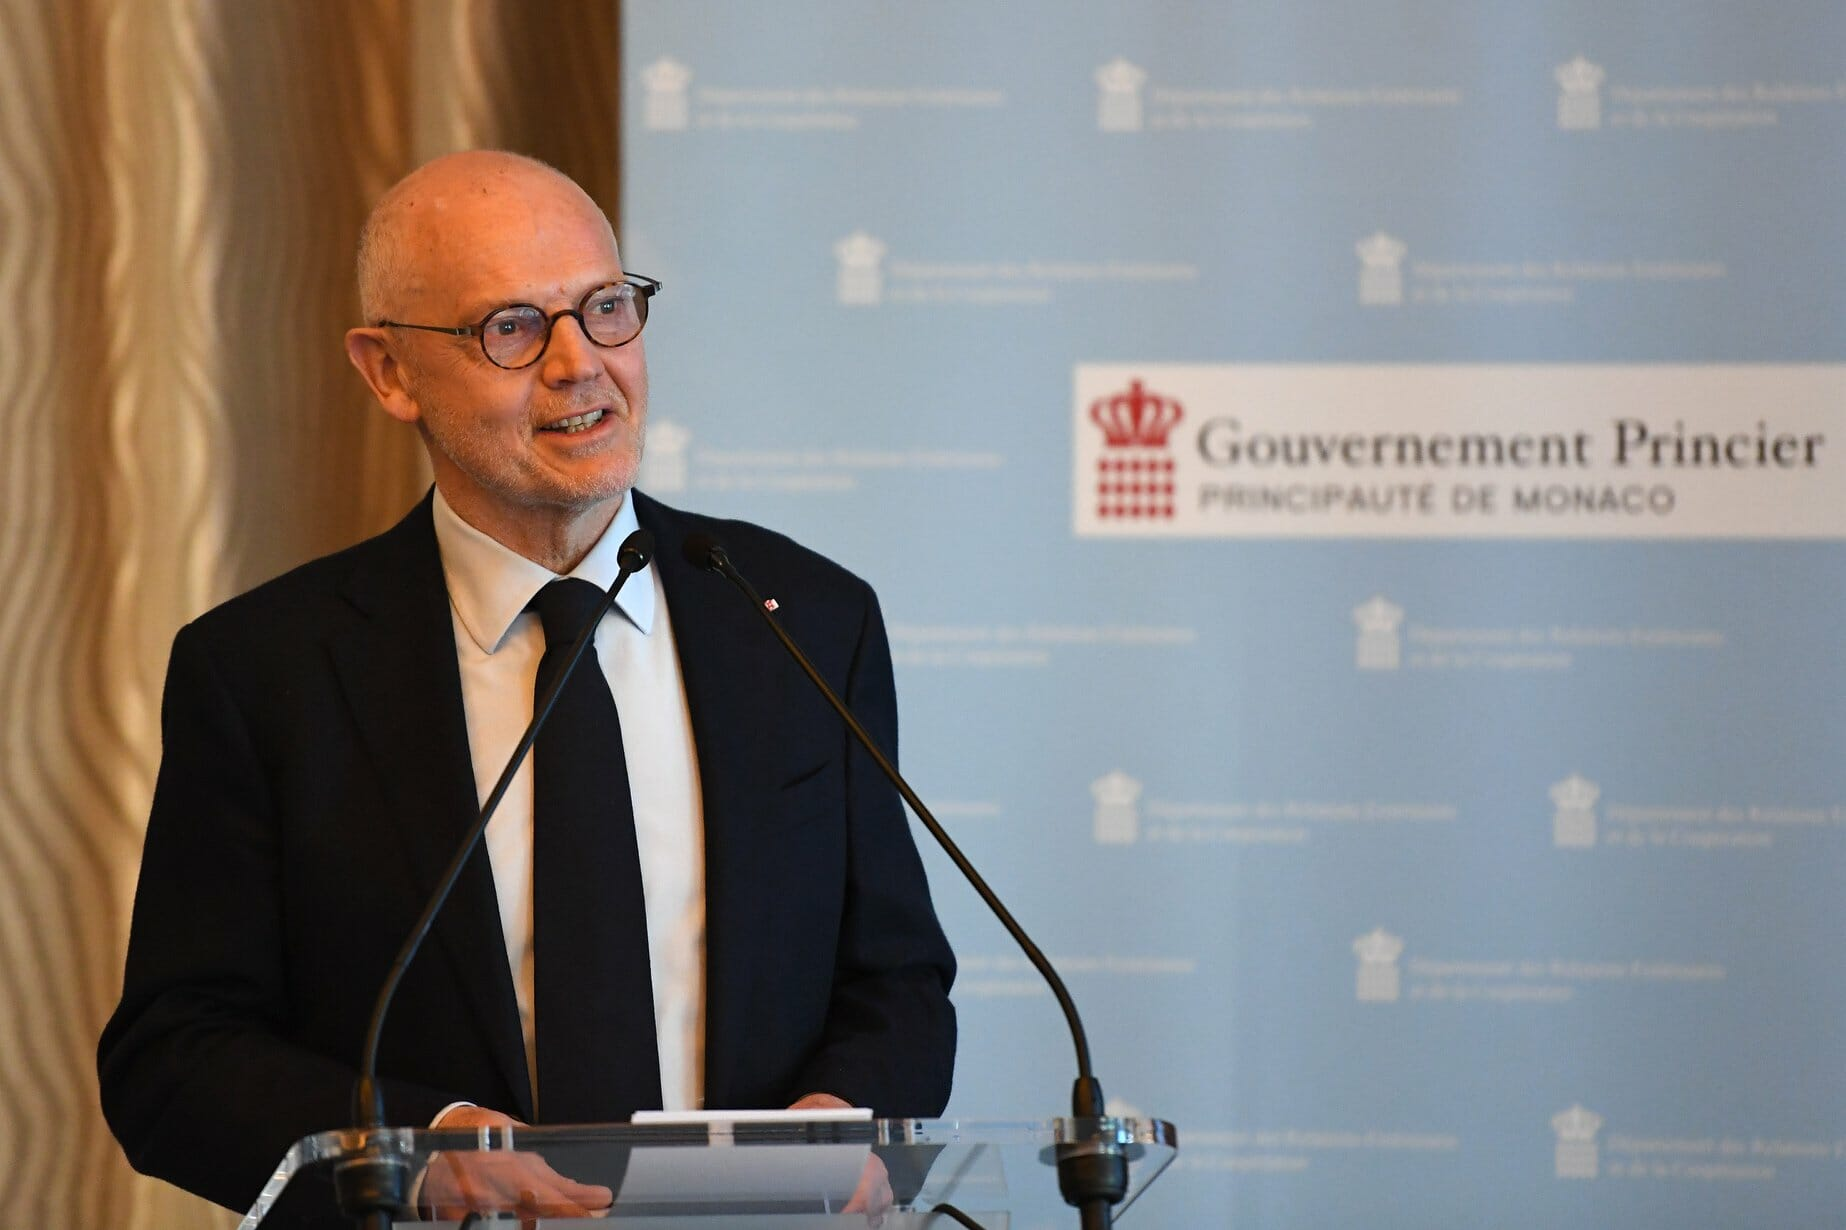 HE Serge Telle opened the Diplomatic Conference